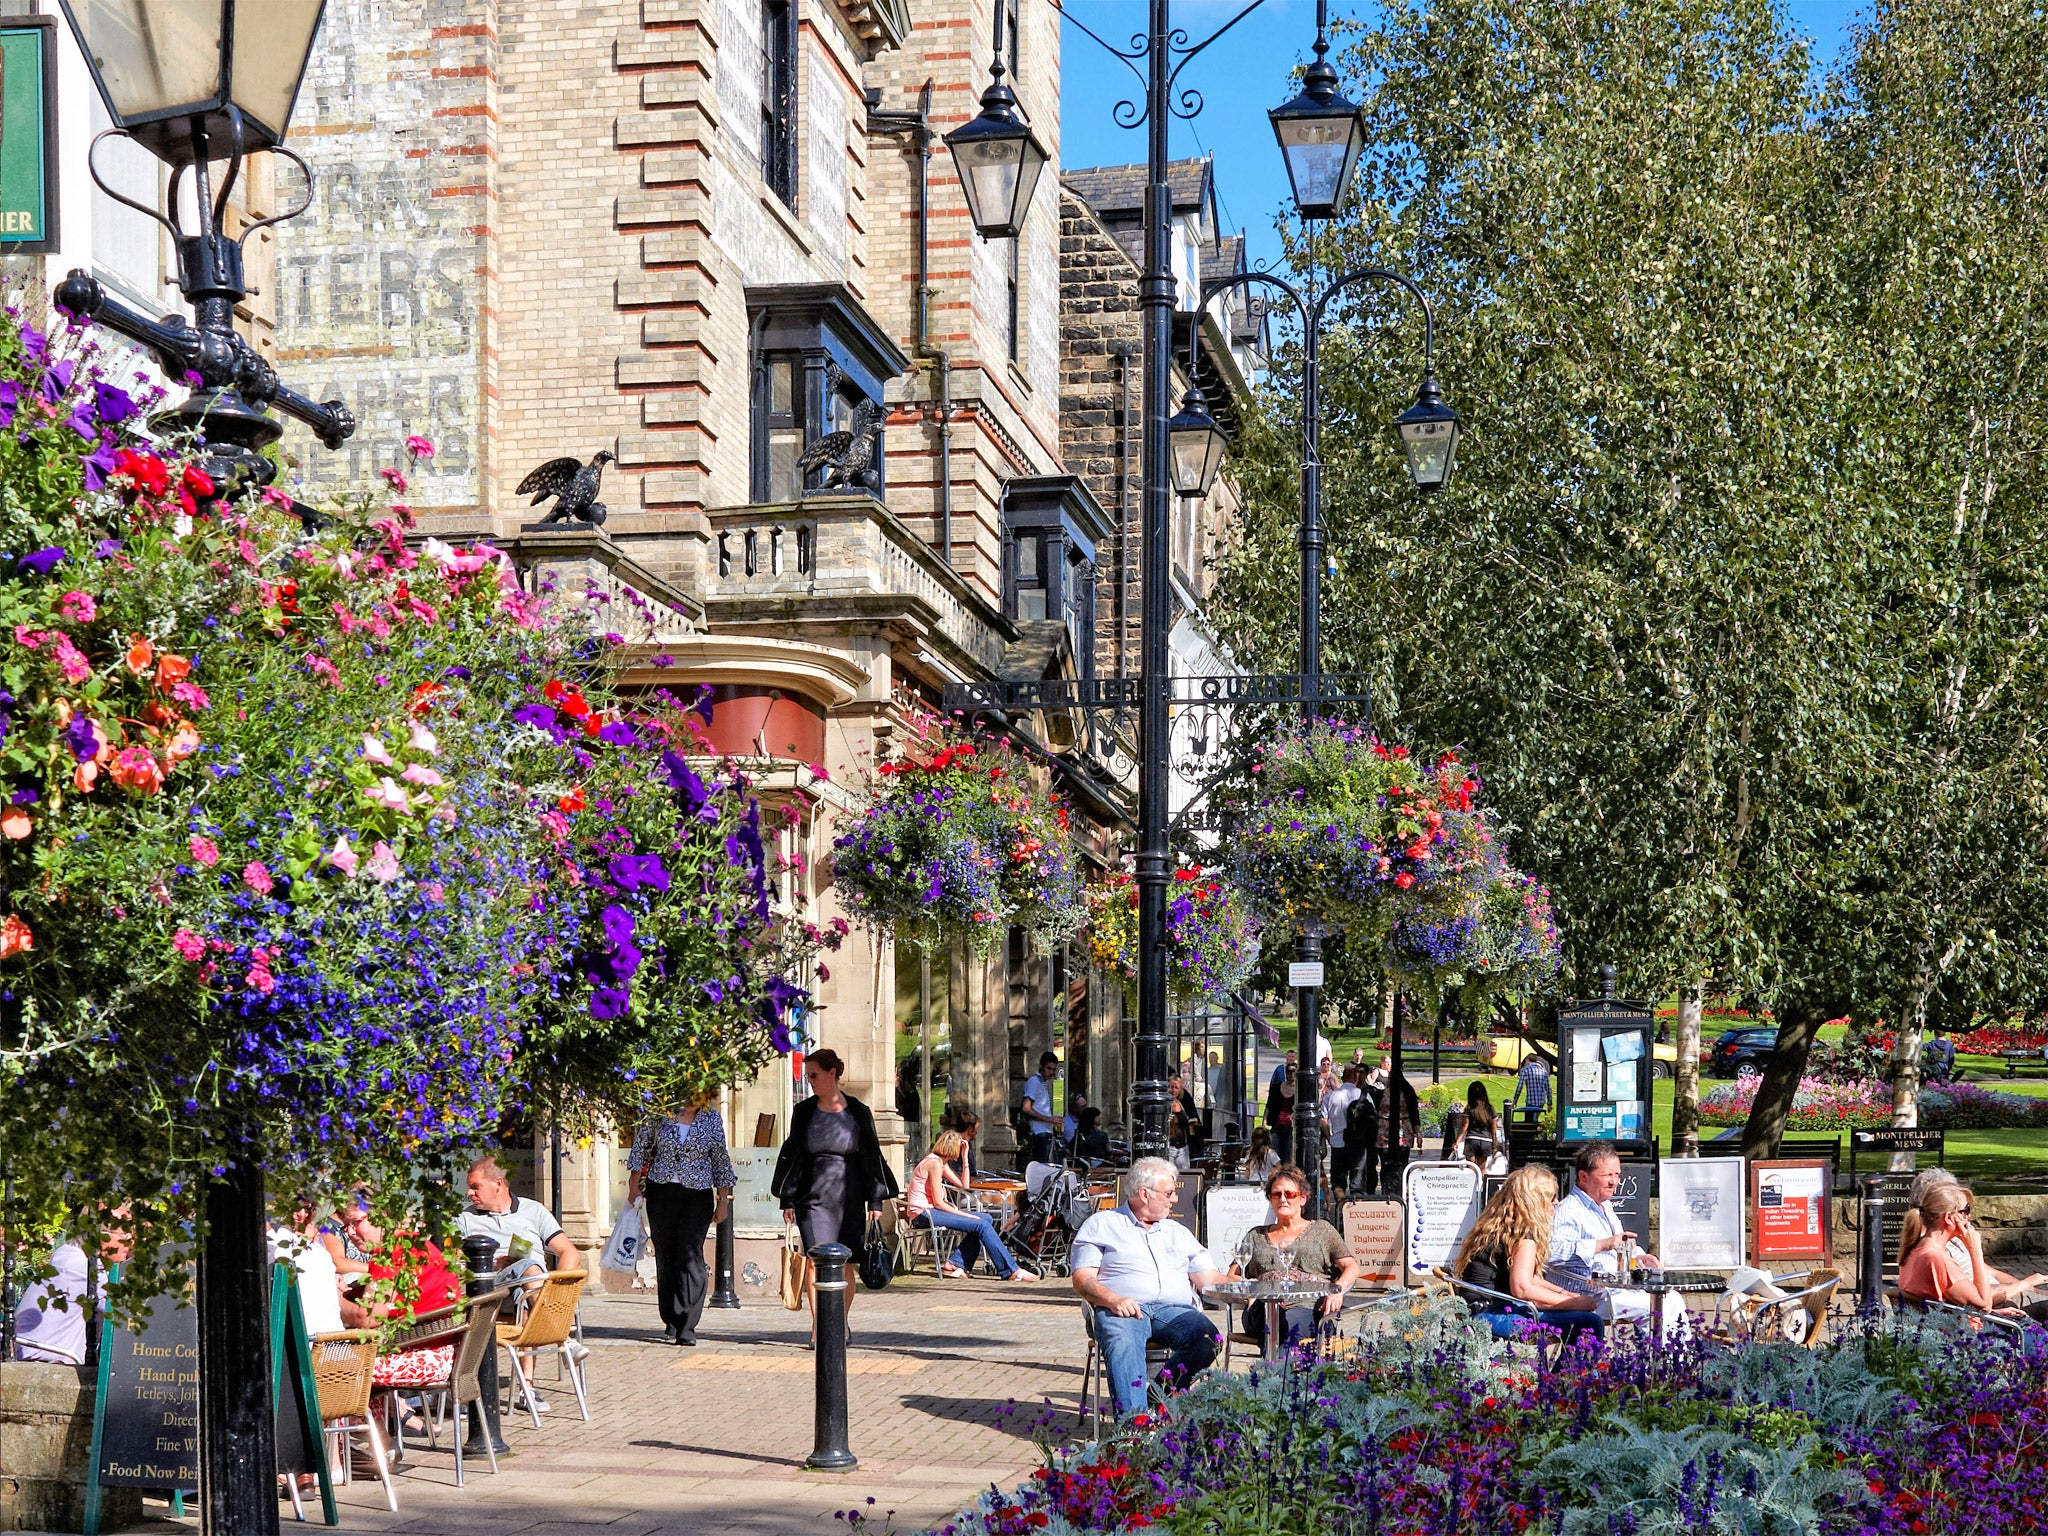 It S Grand Up North Harrogate Voted The Happiest Place To